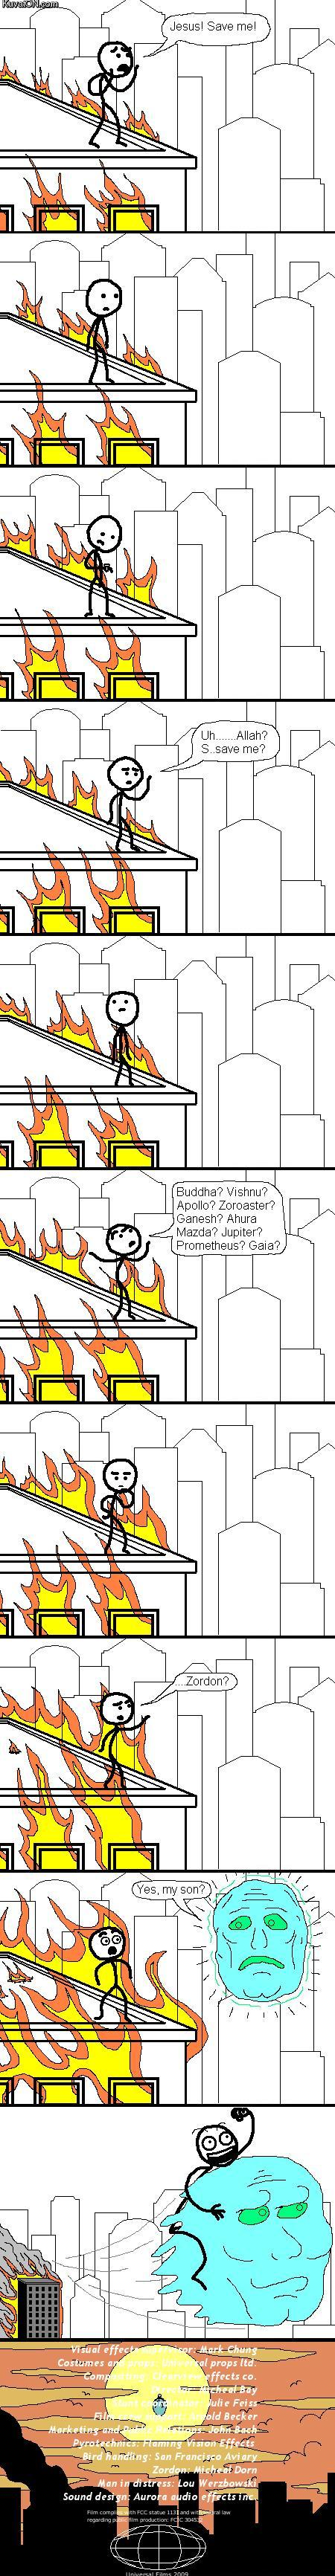 JOKES!!! Atheist/Religious Jokes - Page 2 Save_me_comic